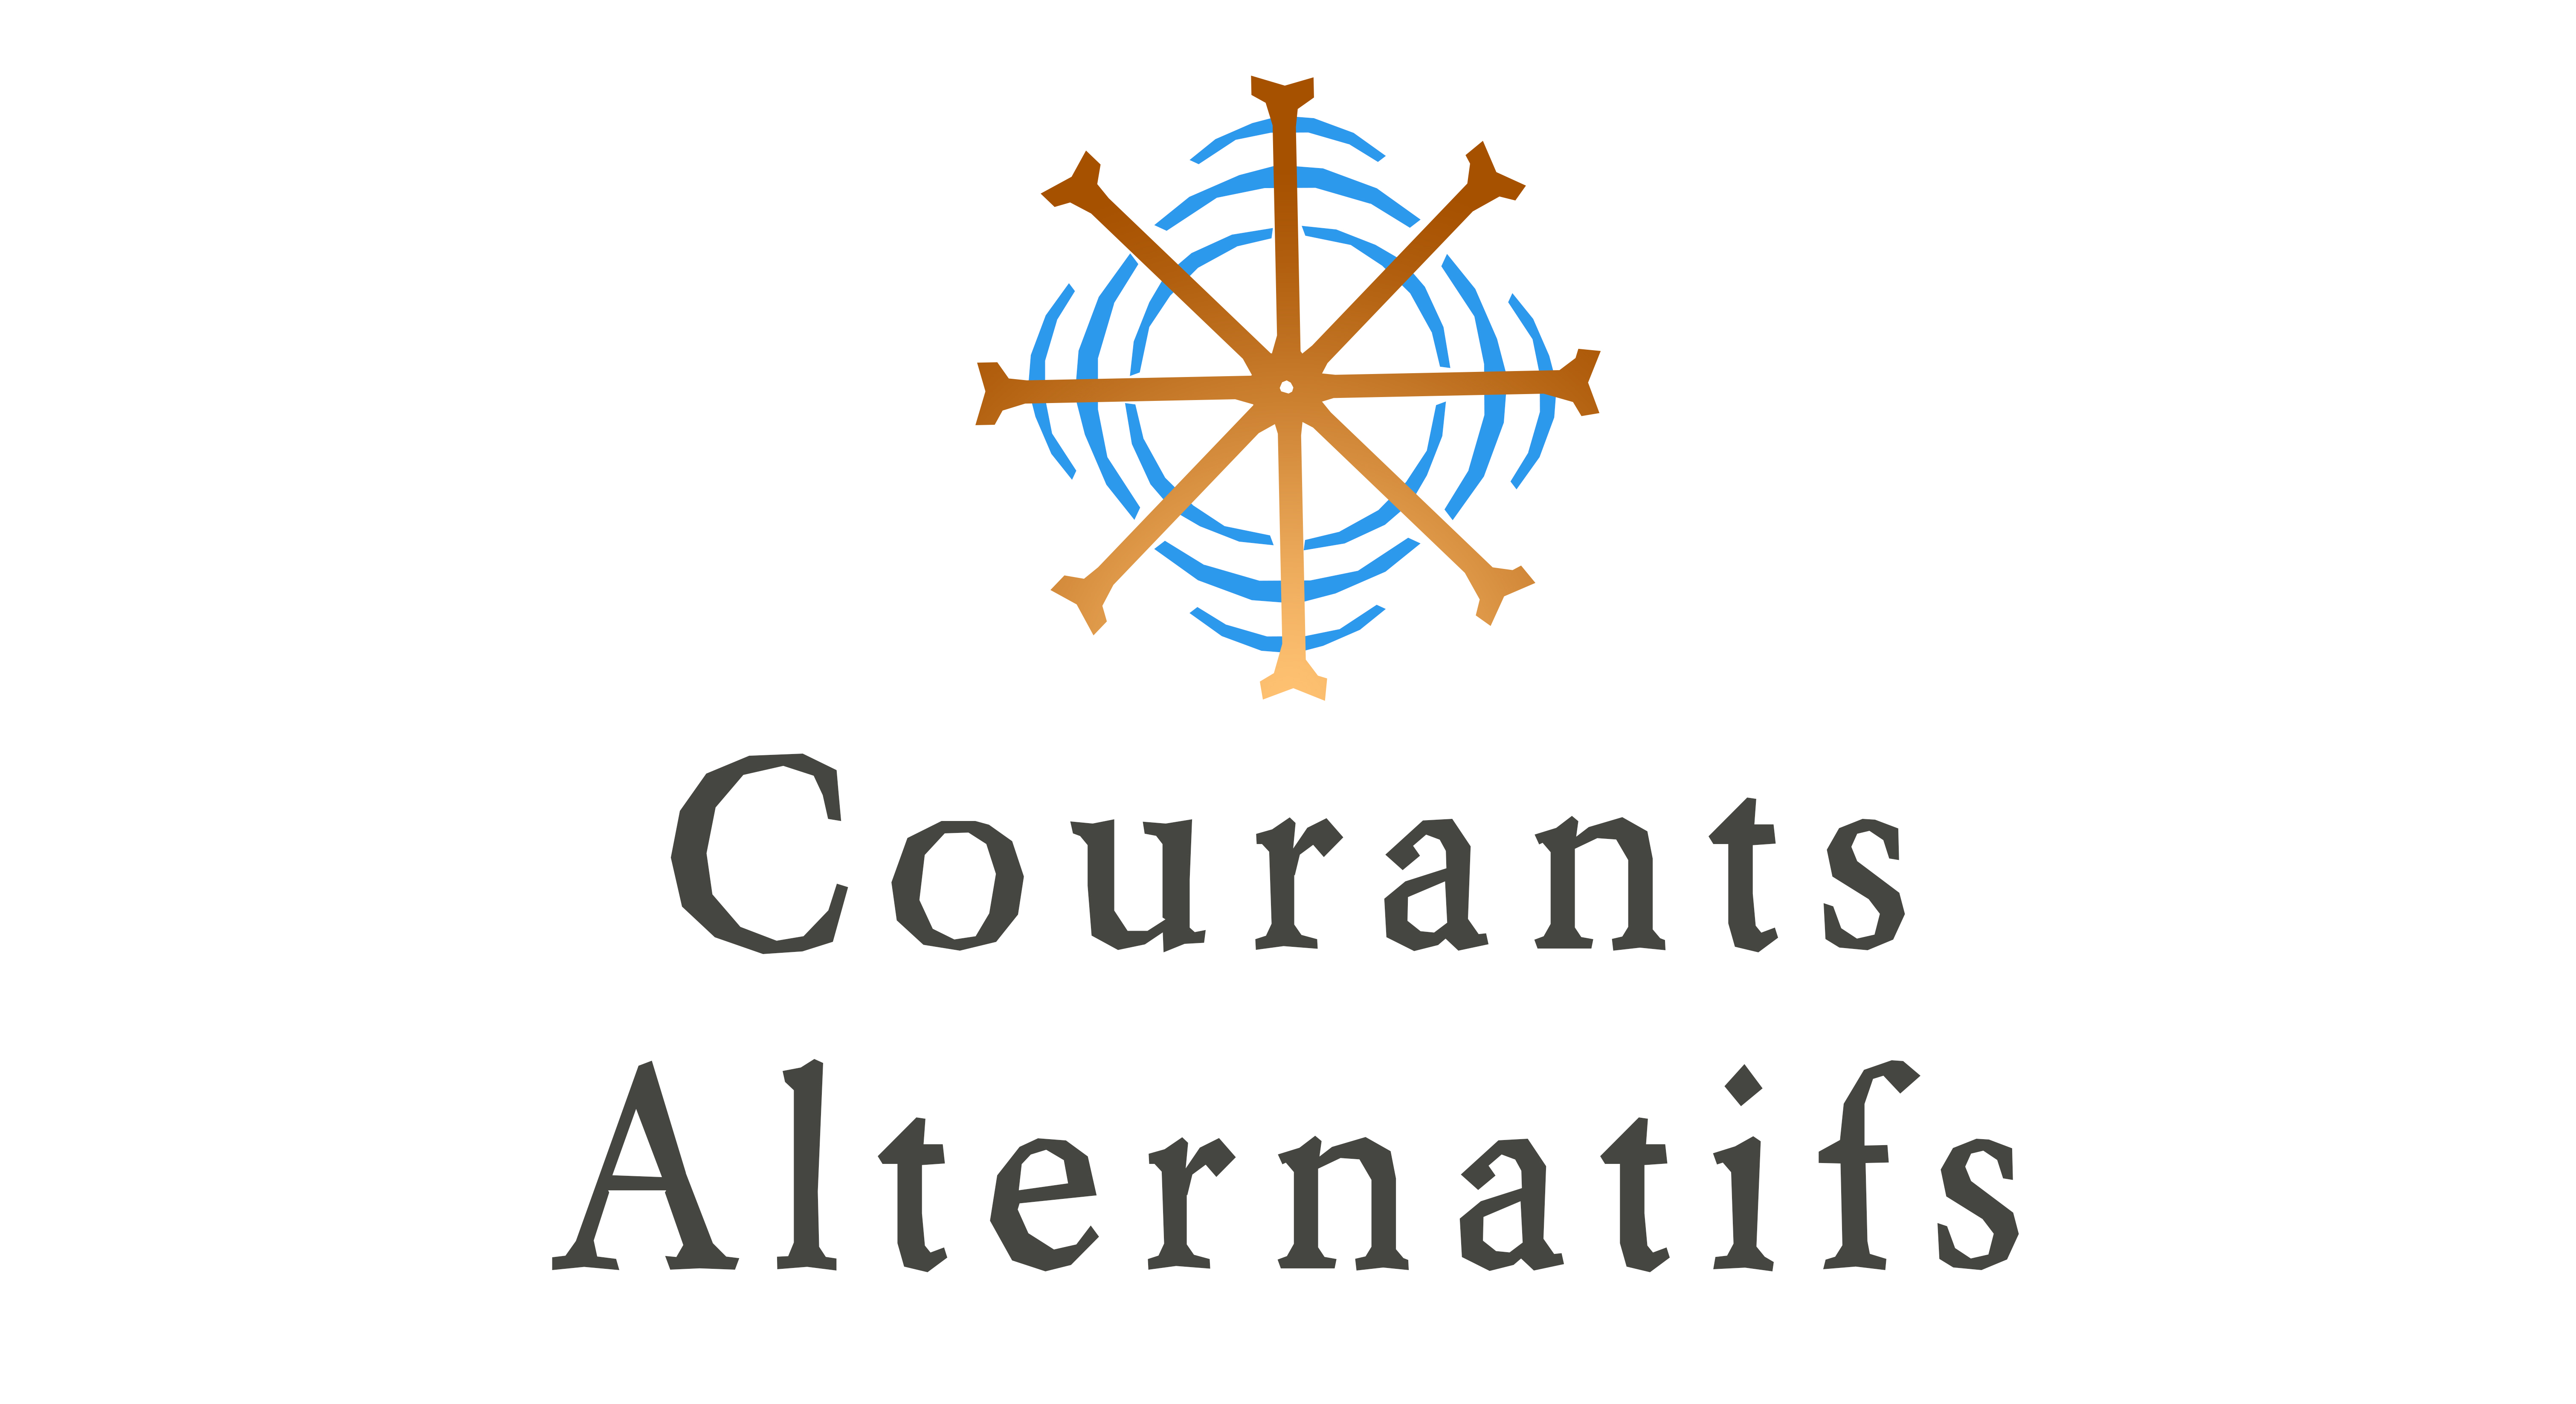 Les Courants Alternatifs